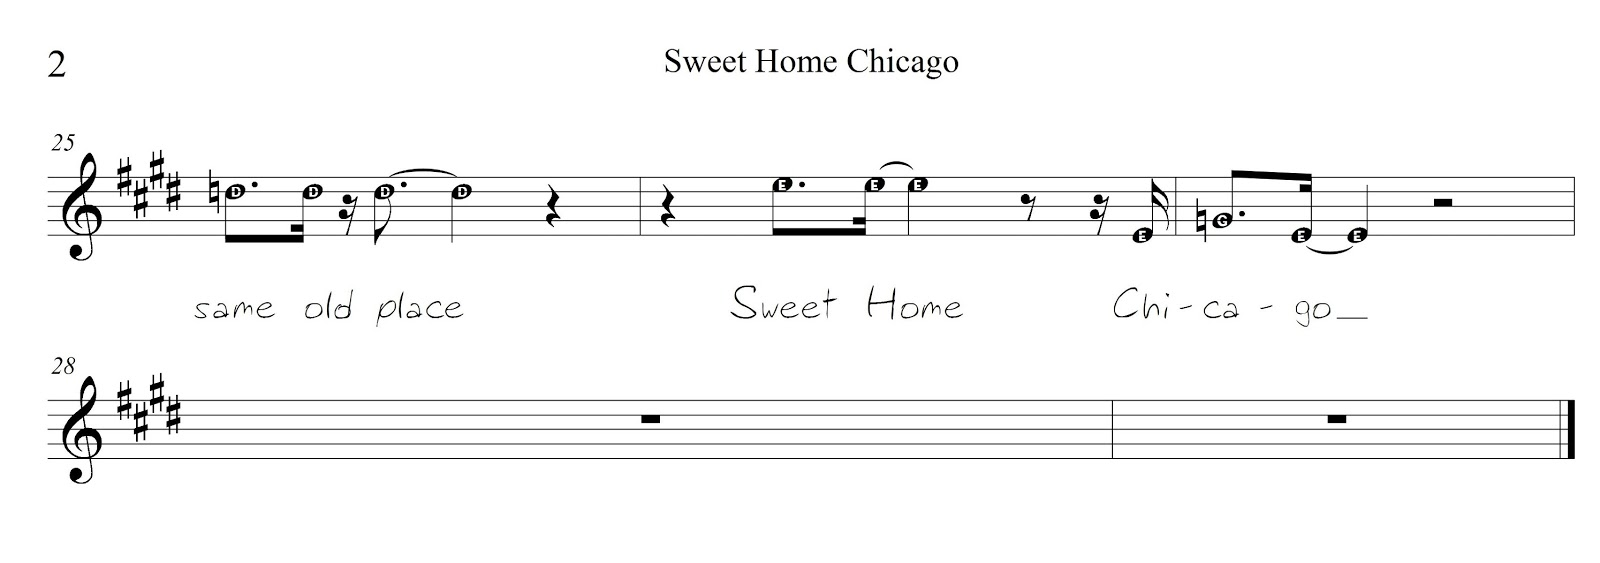 Pianopad upload community this song titled sweet home chicago d2e2g2g2f2f2e2d2e2d2e2g2g2f2f2e2d2e2b1b1d2b1d2e2e2e1g1e1d2d2b1d2b1e2d2b1d2b1e2d2d2d2d2d2b1d2b1e2d2e2g2 hexwebz Image collections